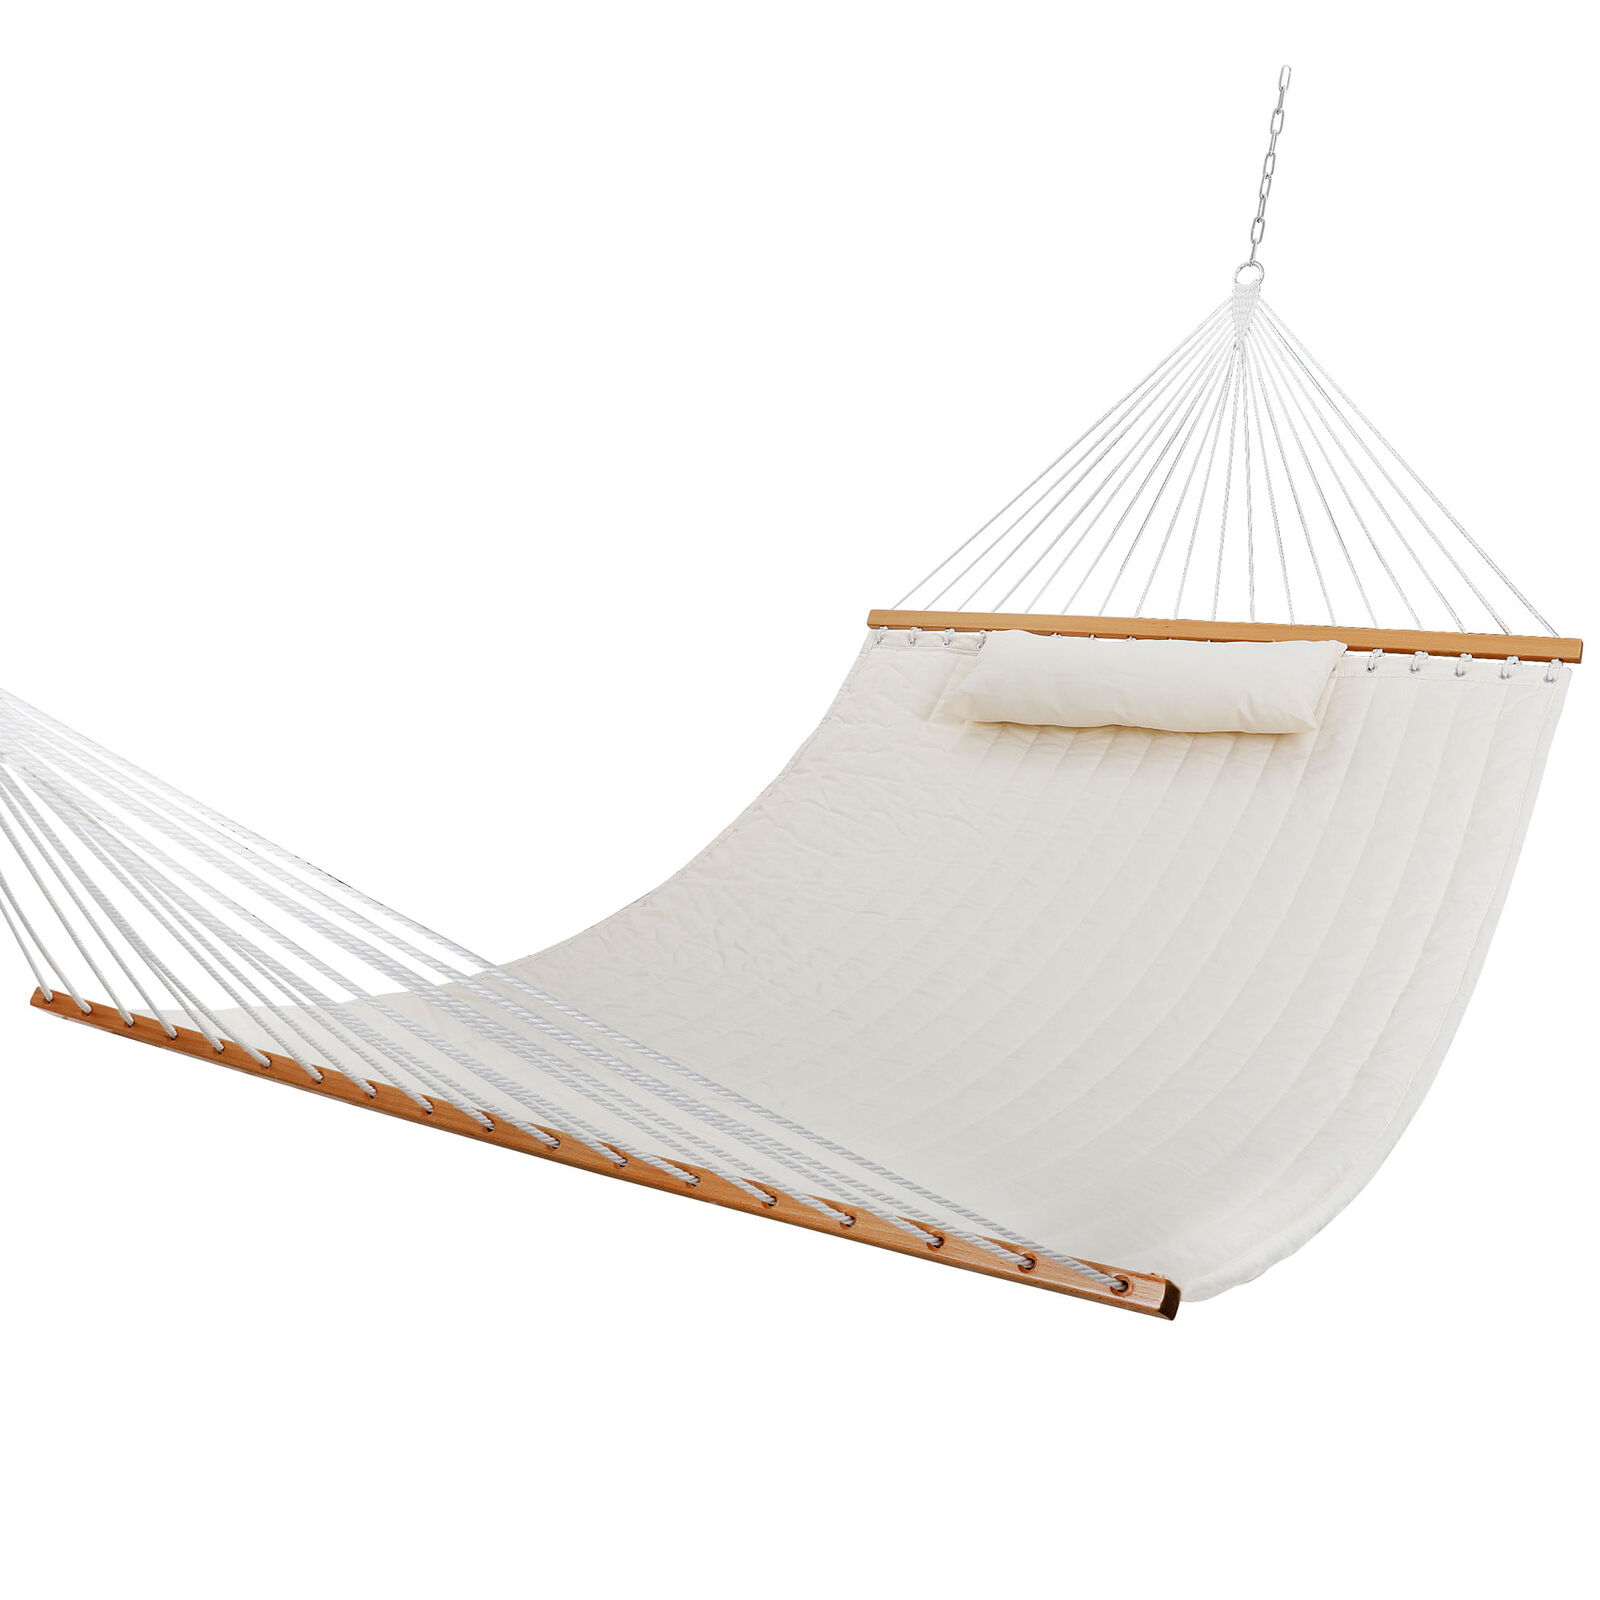 Double Hammock Quilted Fabric Sleeping Bed Swing Hang W/ Pillow 2 Person White Hammocks